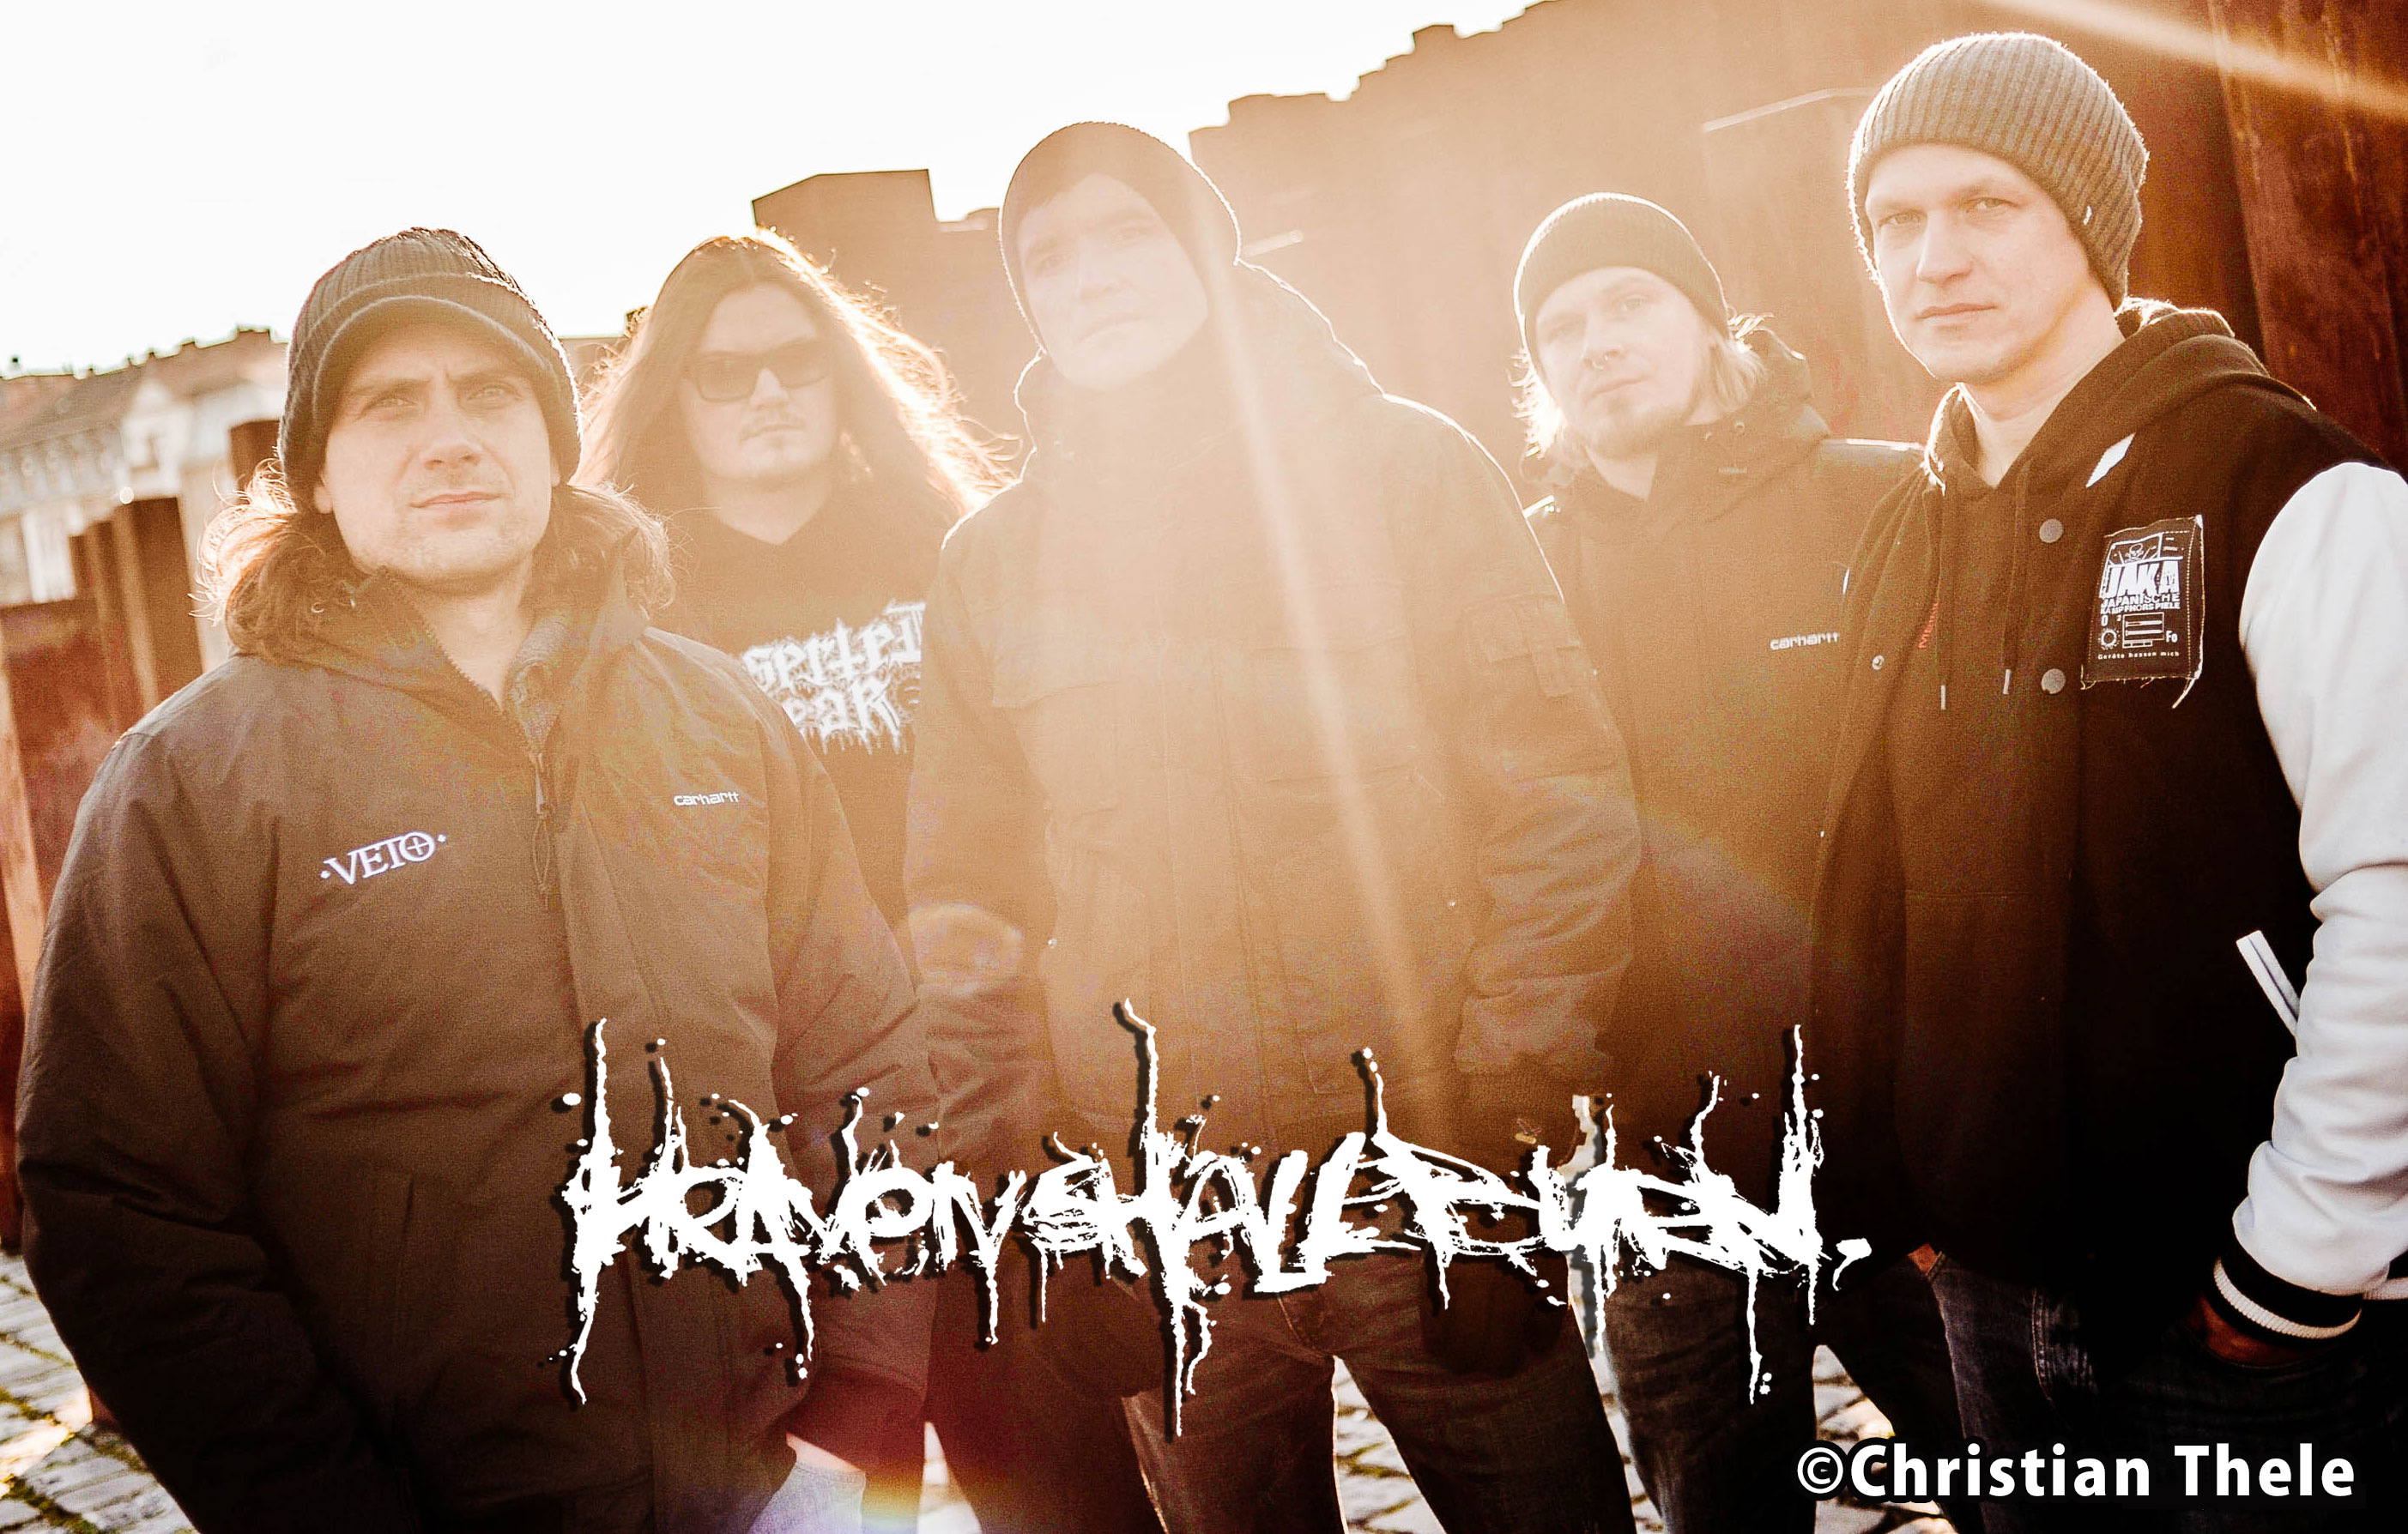 Heaven Shall Burn photo by Christian Thele